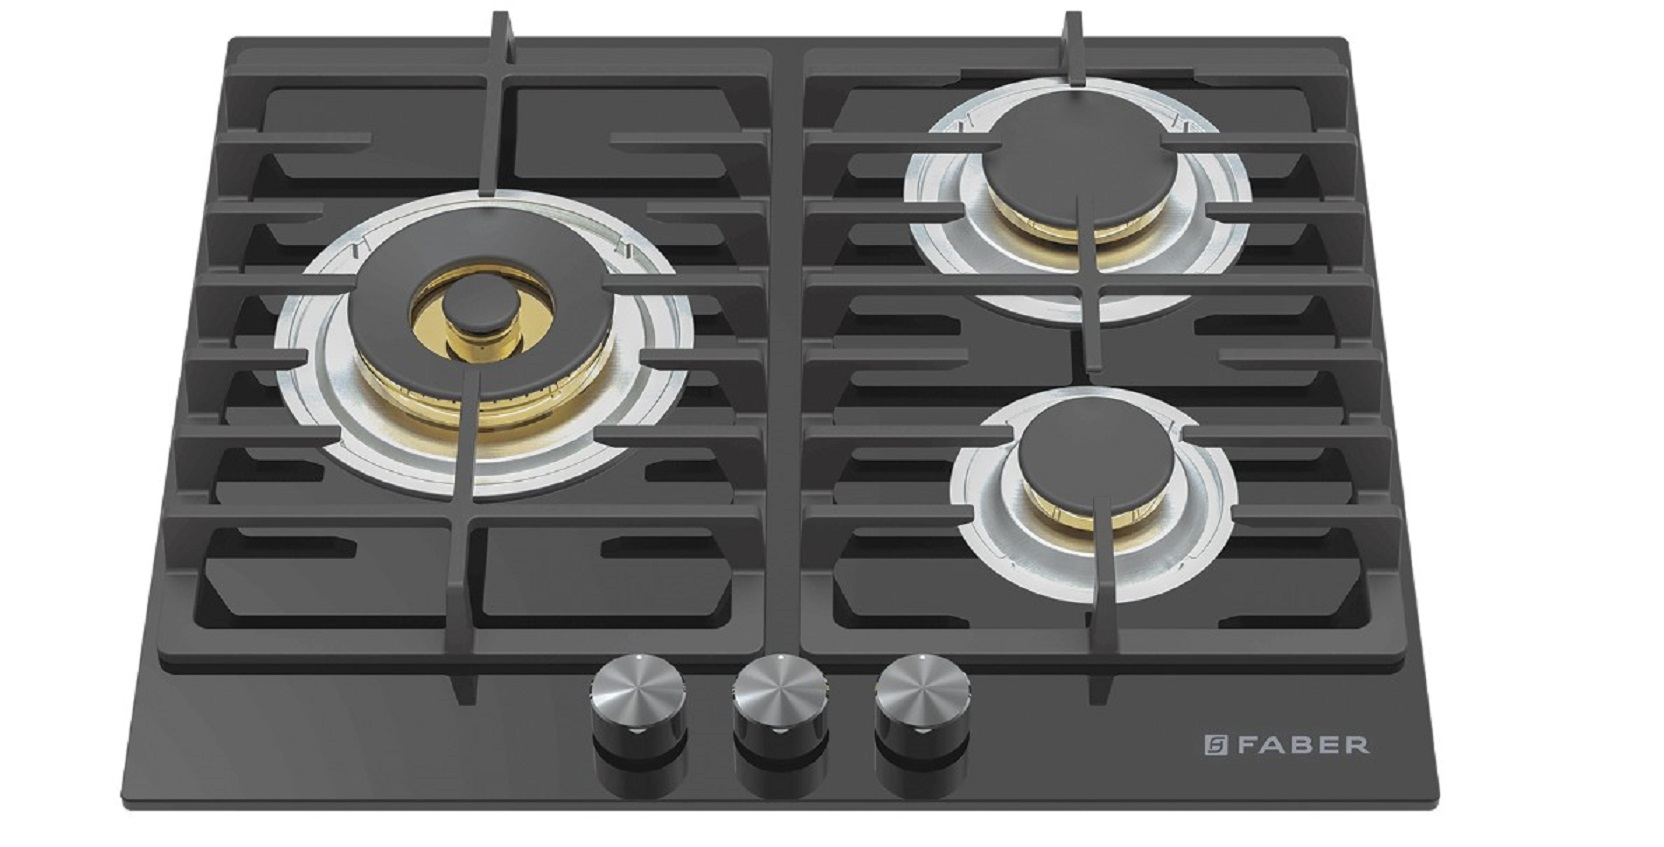 Faber Stainless steel Built- In-Hob Gas FPH 603 BK by HomeTown